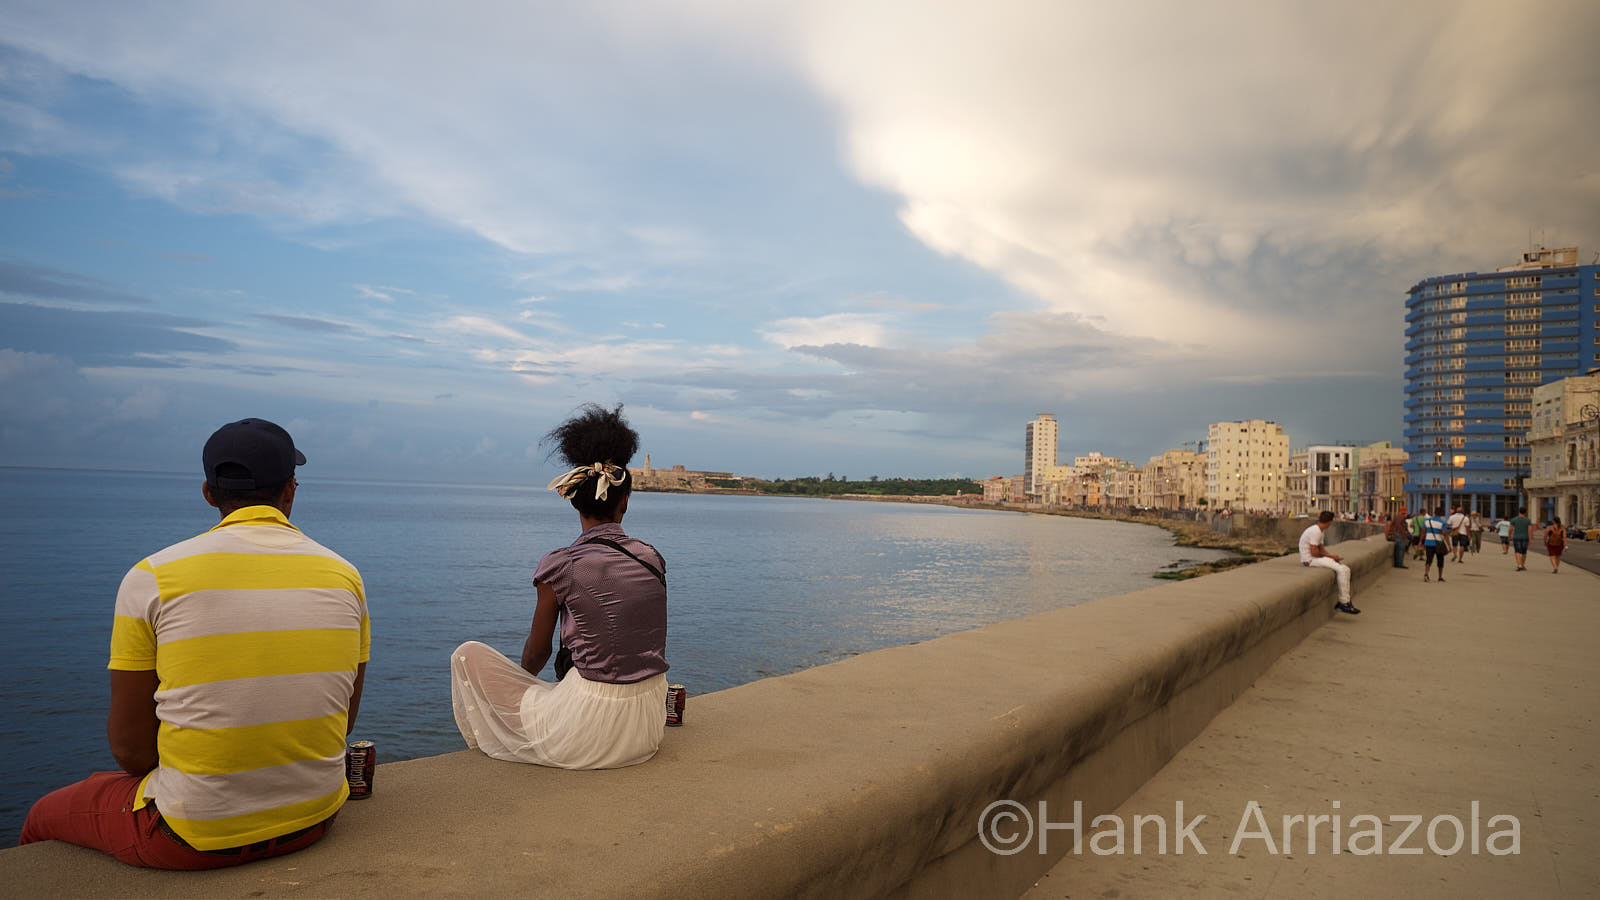 El Malacon - The Sea Wall, the best place to find entertainment in La Habana